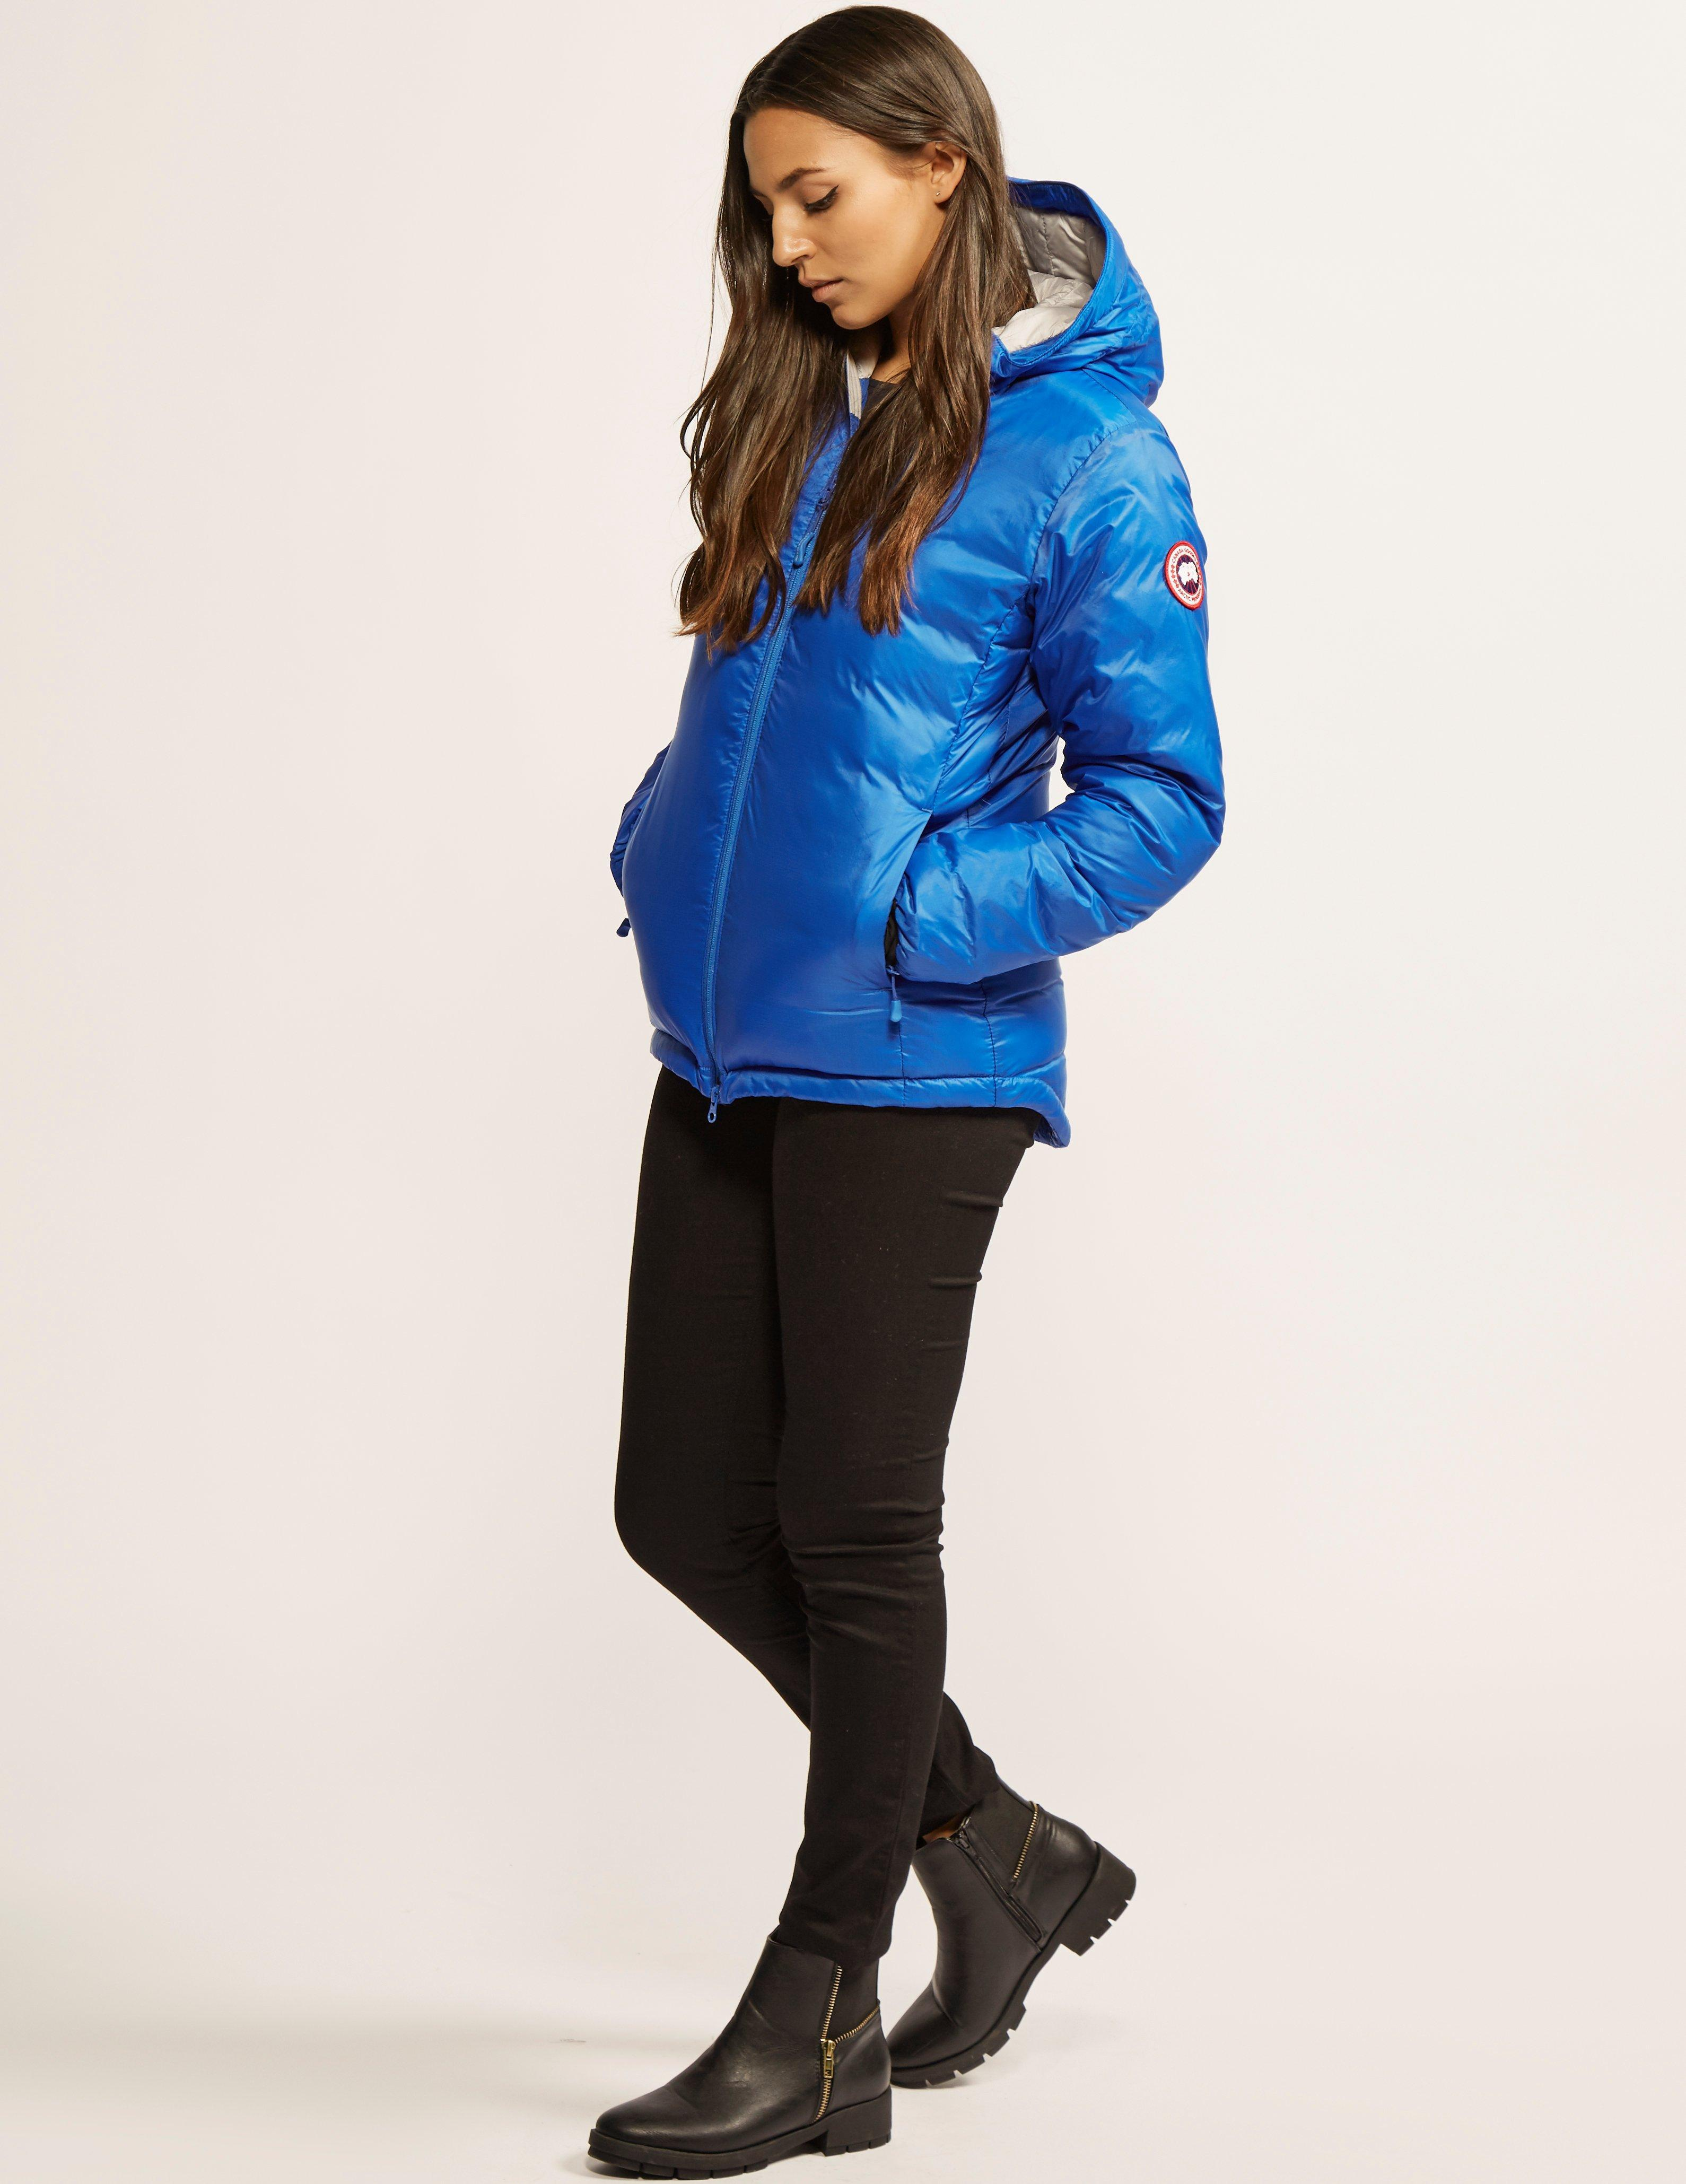 Canada Goose Womens Pbi Camp Hooded Padded Jacket Blue in Blue - Lyst 1ec76427a4